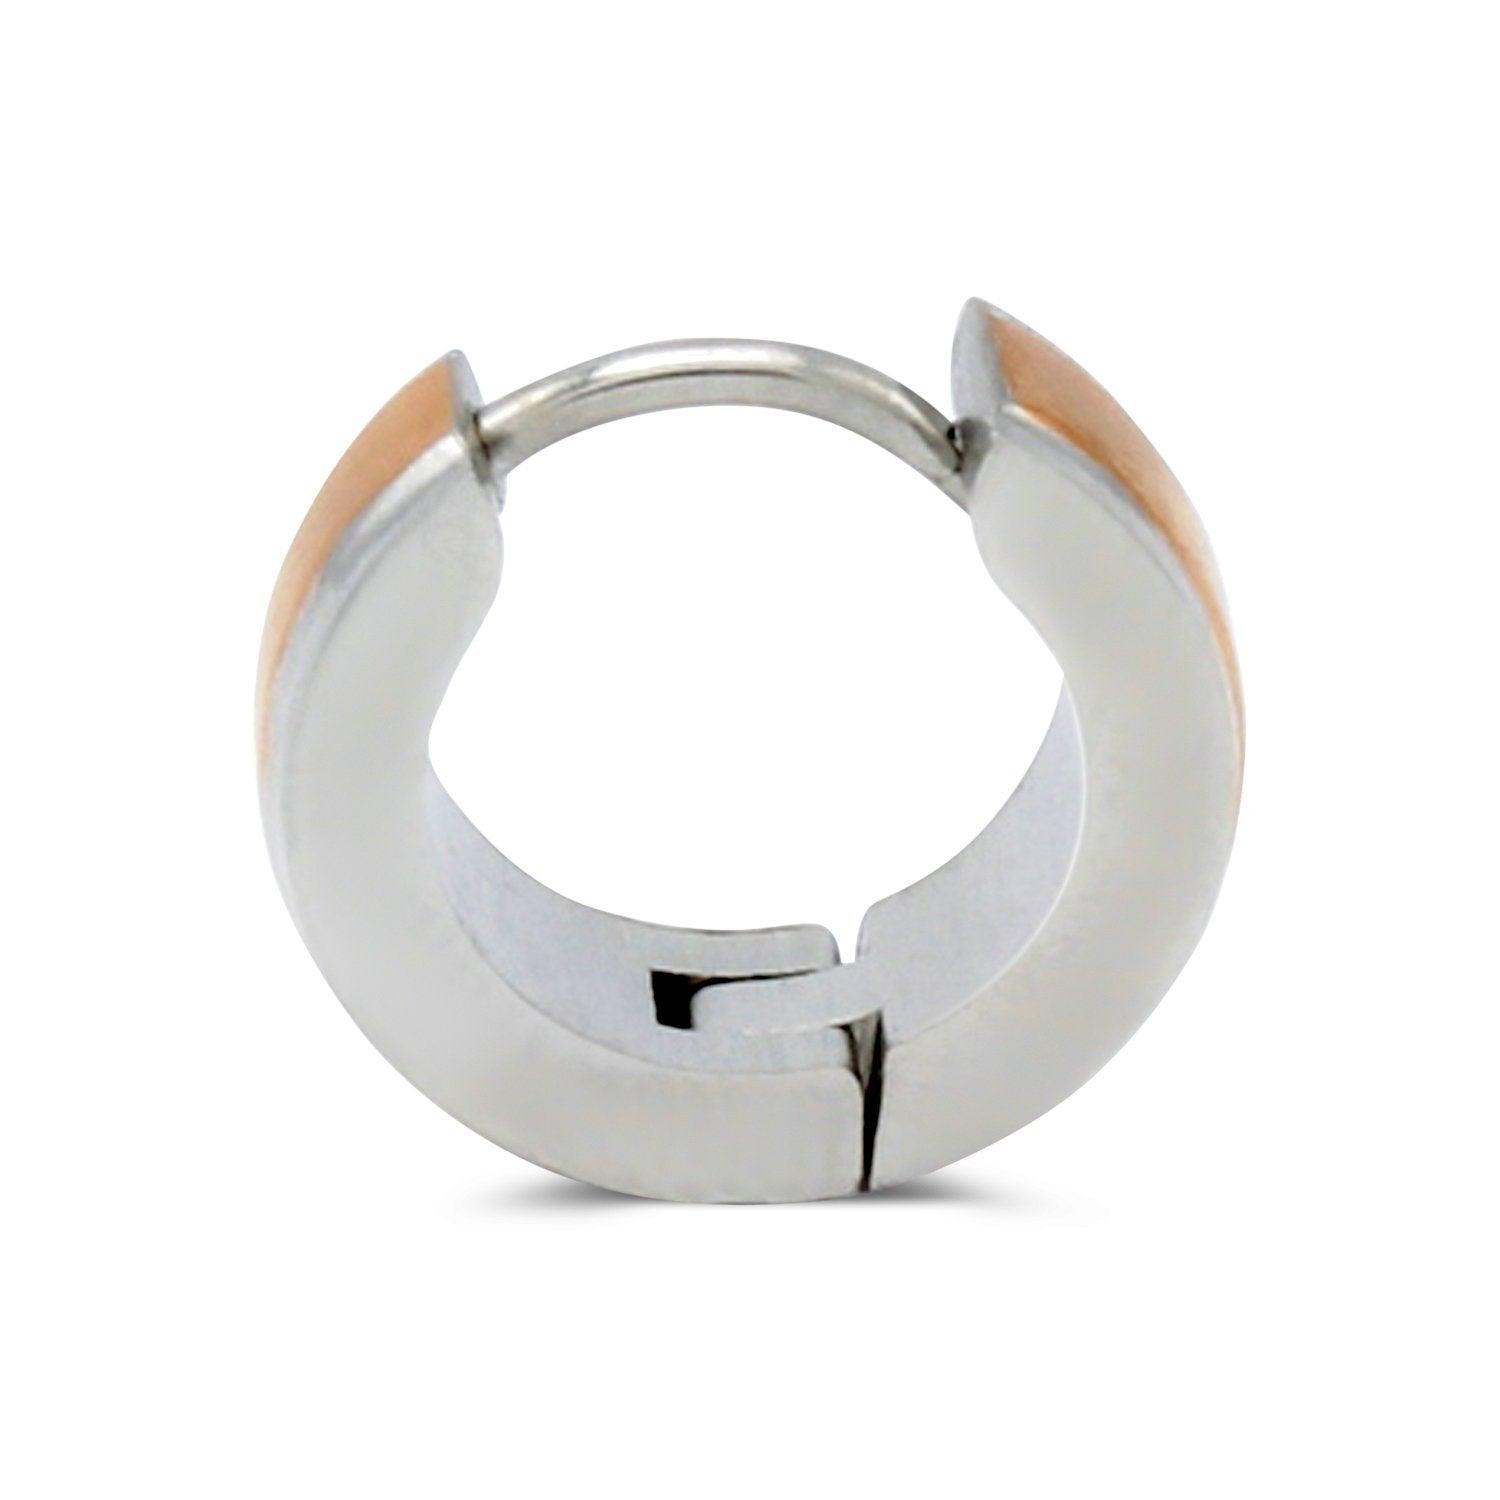 Huggie Hoop Earrings Stainless Steel with Rose Gold Stripes